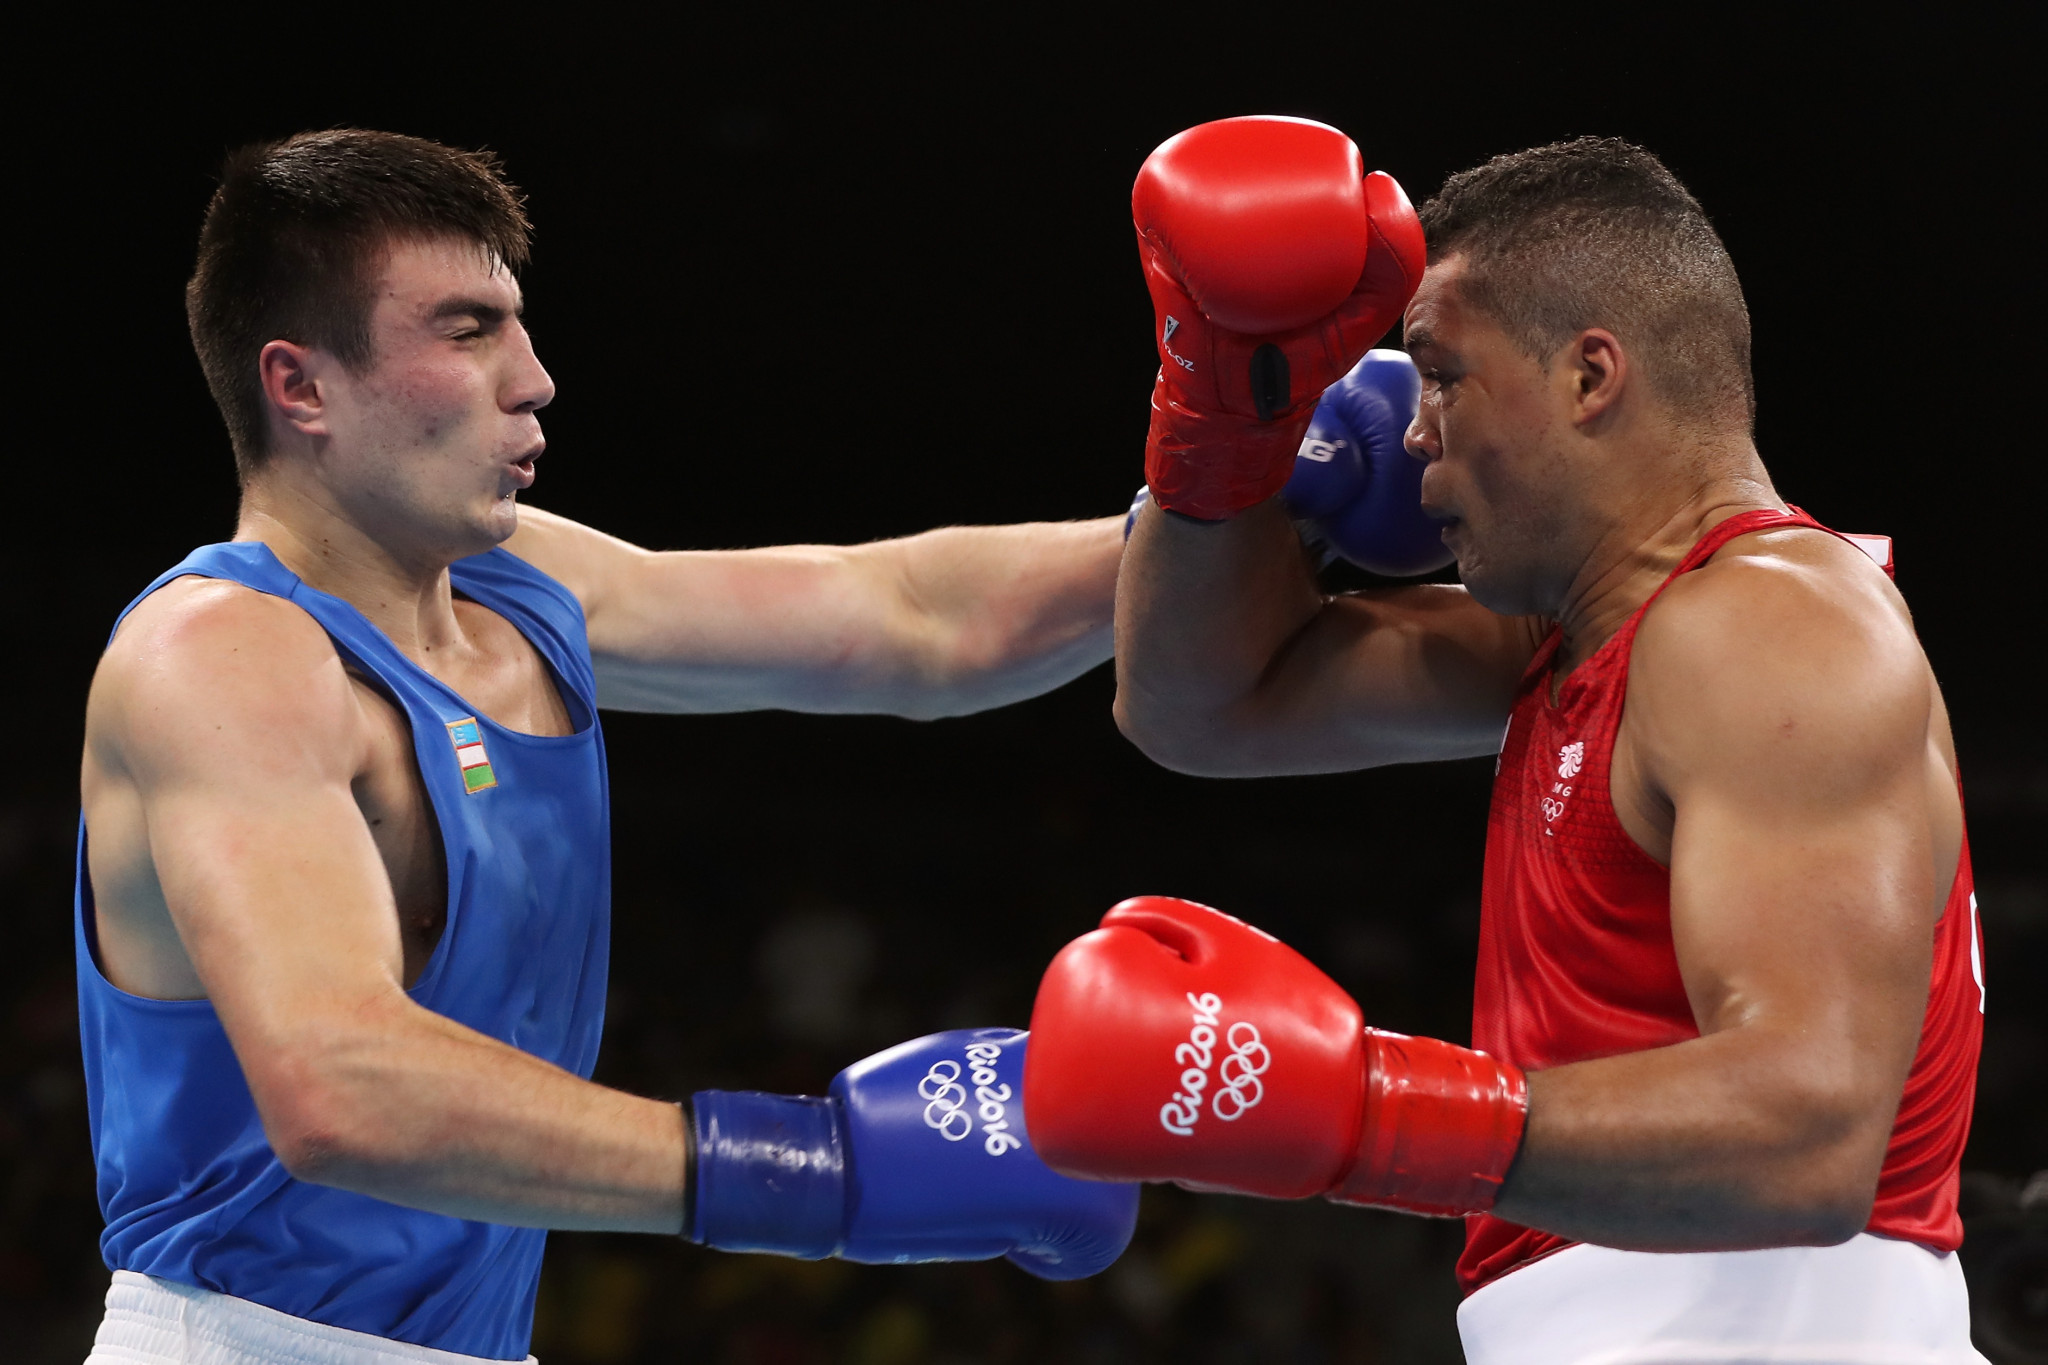 Bakhodir Jalolov, left, has been named Uzbekistan's Male Athlete of 2019 at a ceremony in Tashkent ©Getty Images